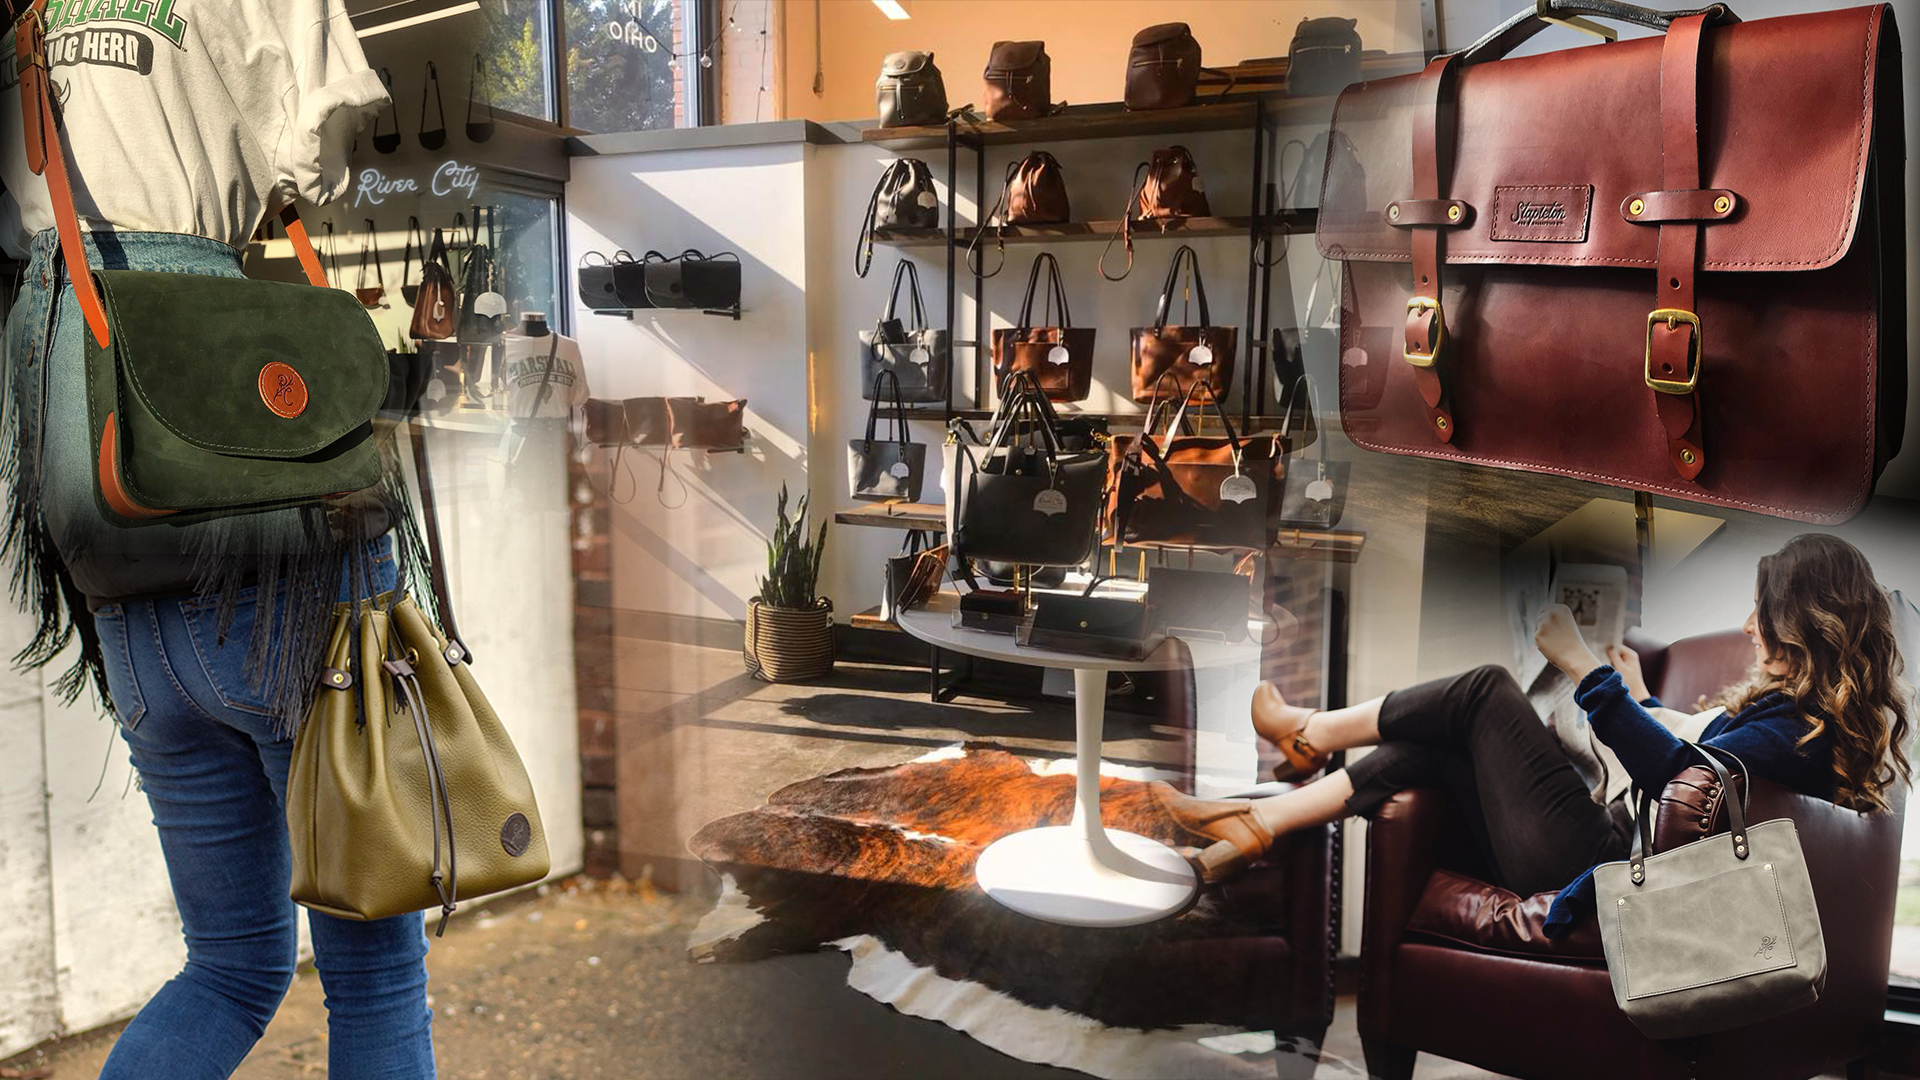 River City Leather Brings Handmade Leather Goods To Downtown Huntington